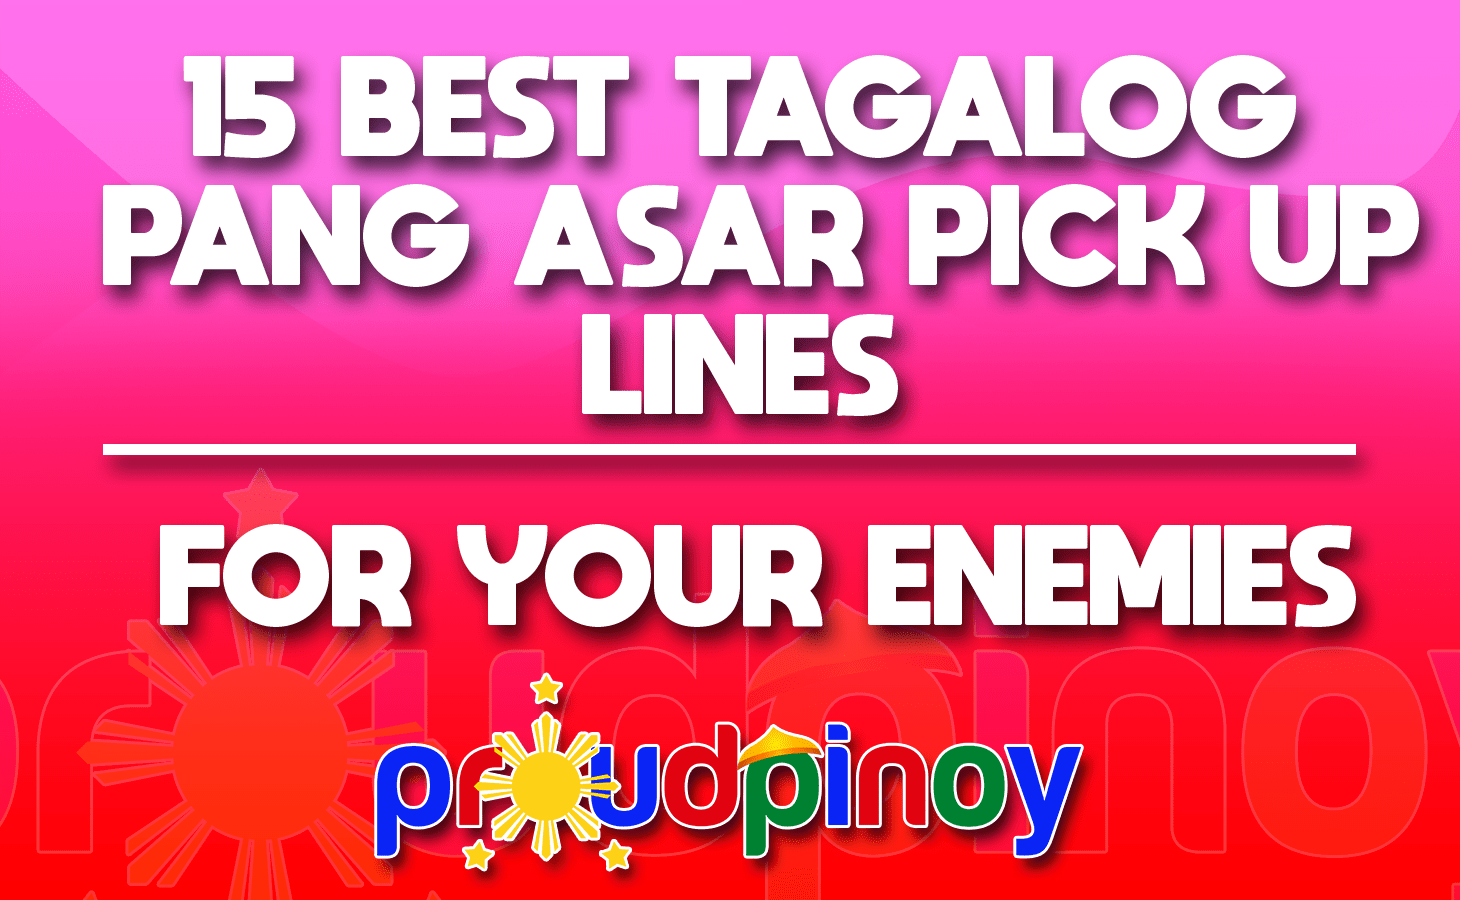 2021 love date lines pick up (!) tagalog 🥇 209+